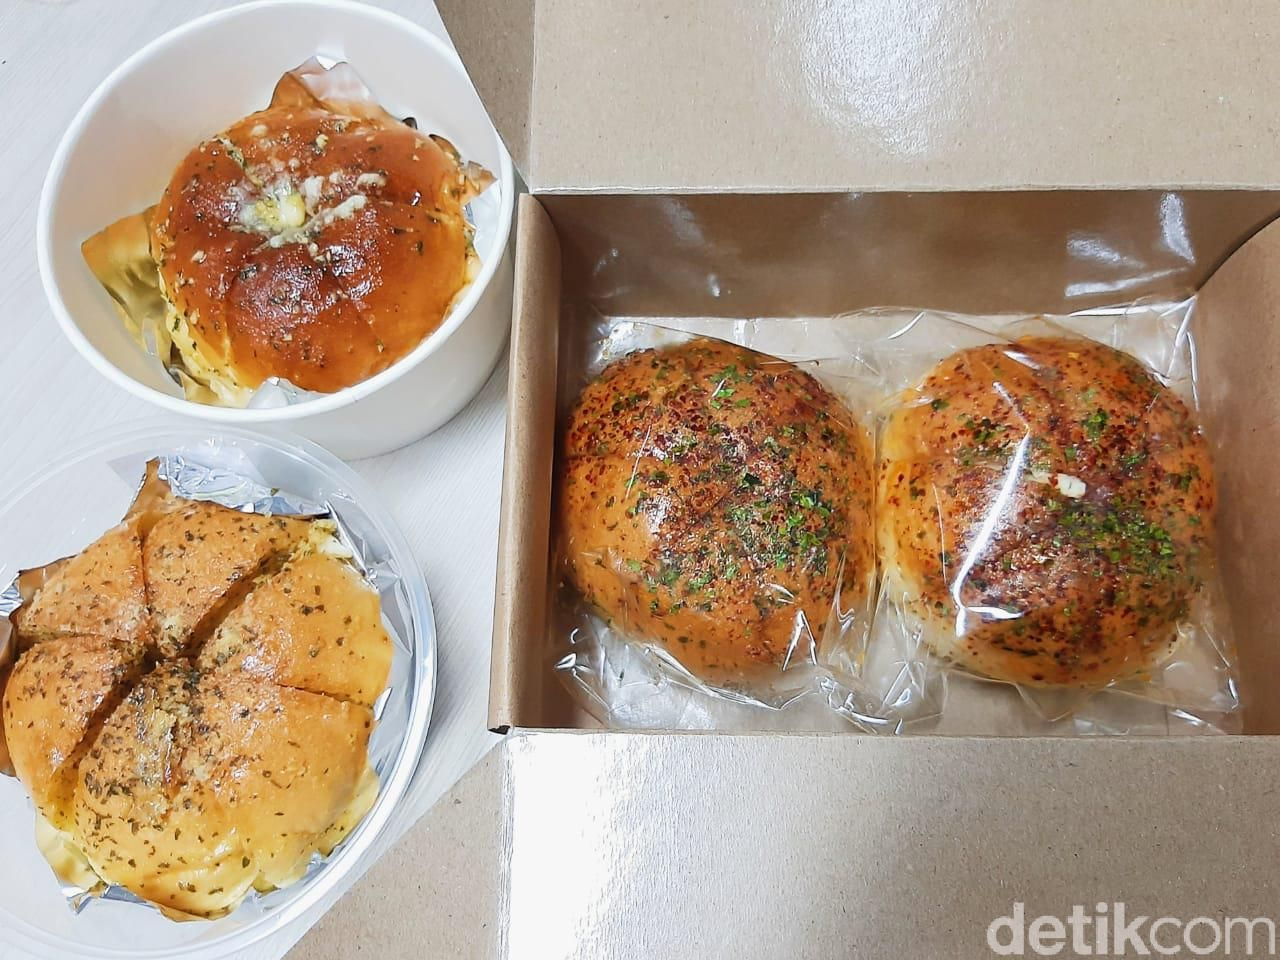 Review Battle 3 Korean Garlic Cheese Bread; Super Furry, Sweet Troops, Odelice Indonesia